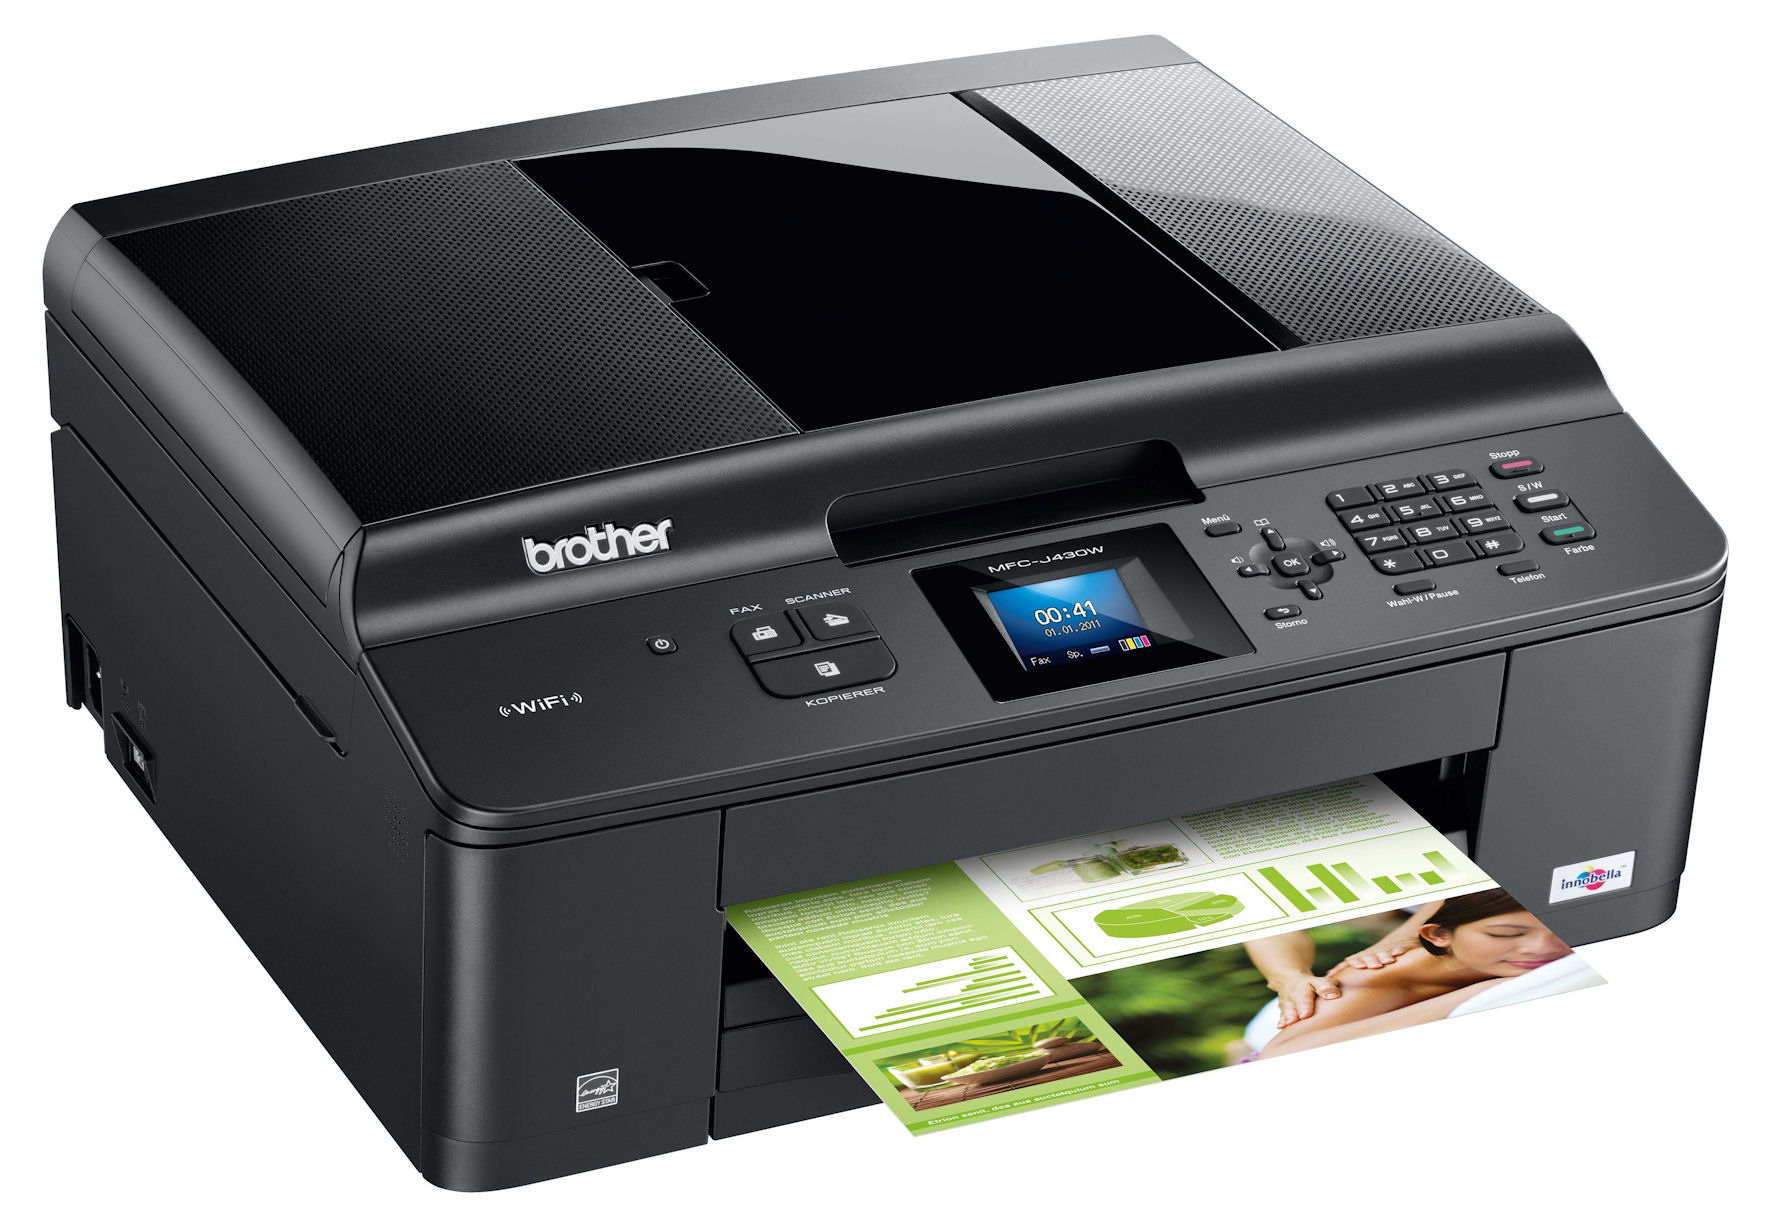 Brother MFC-820CN Printer Drivers for Windows Mac